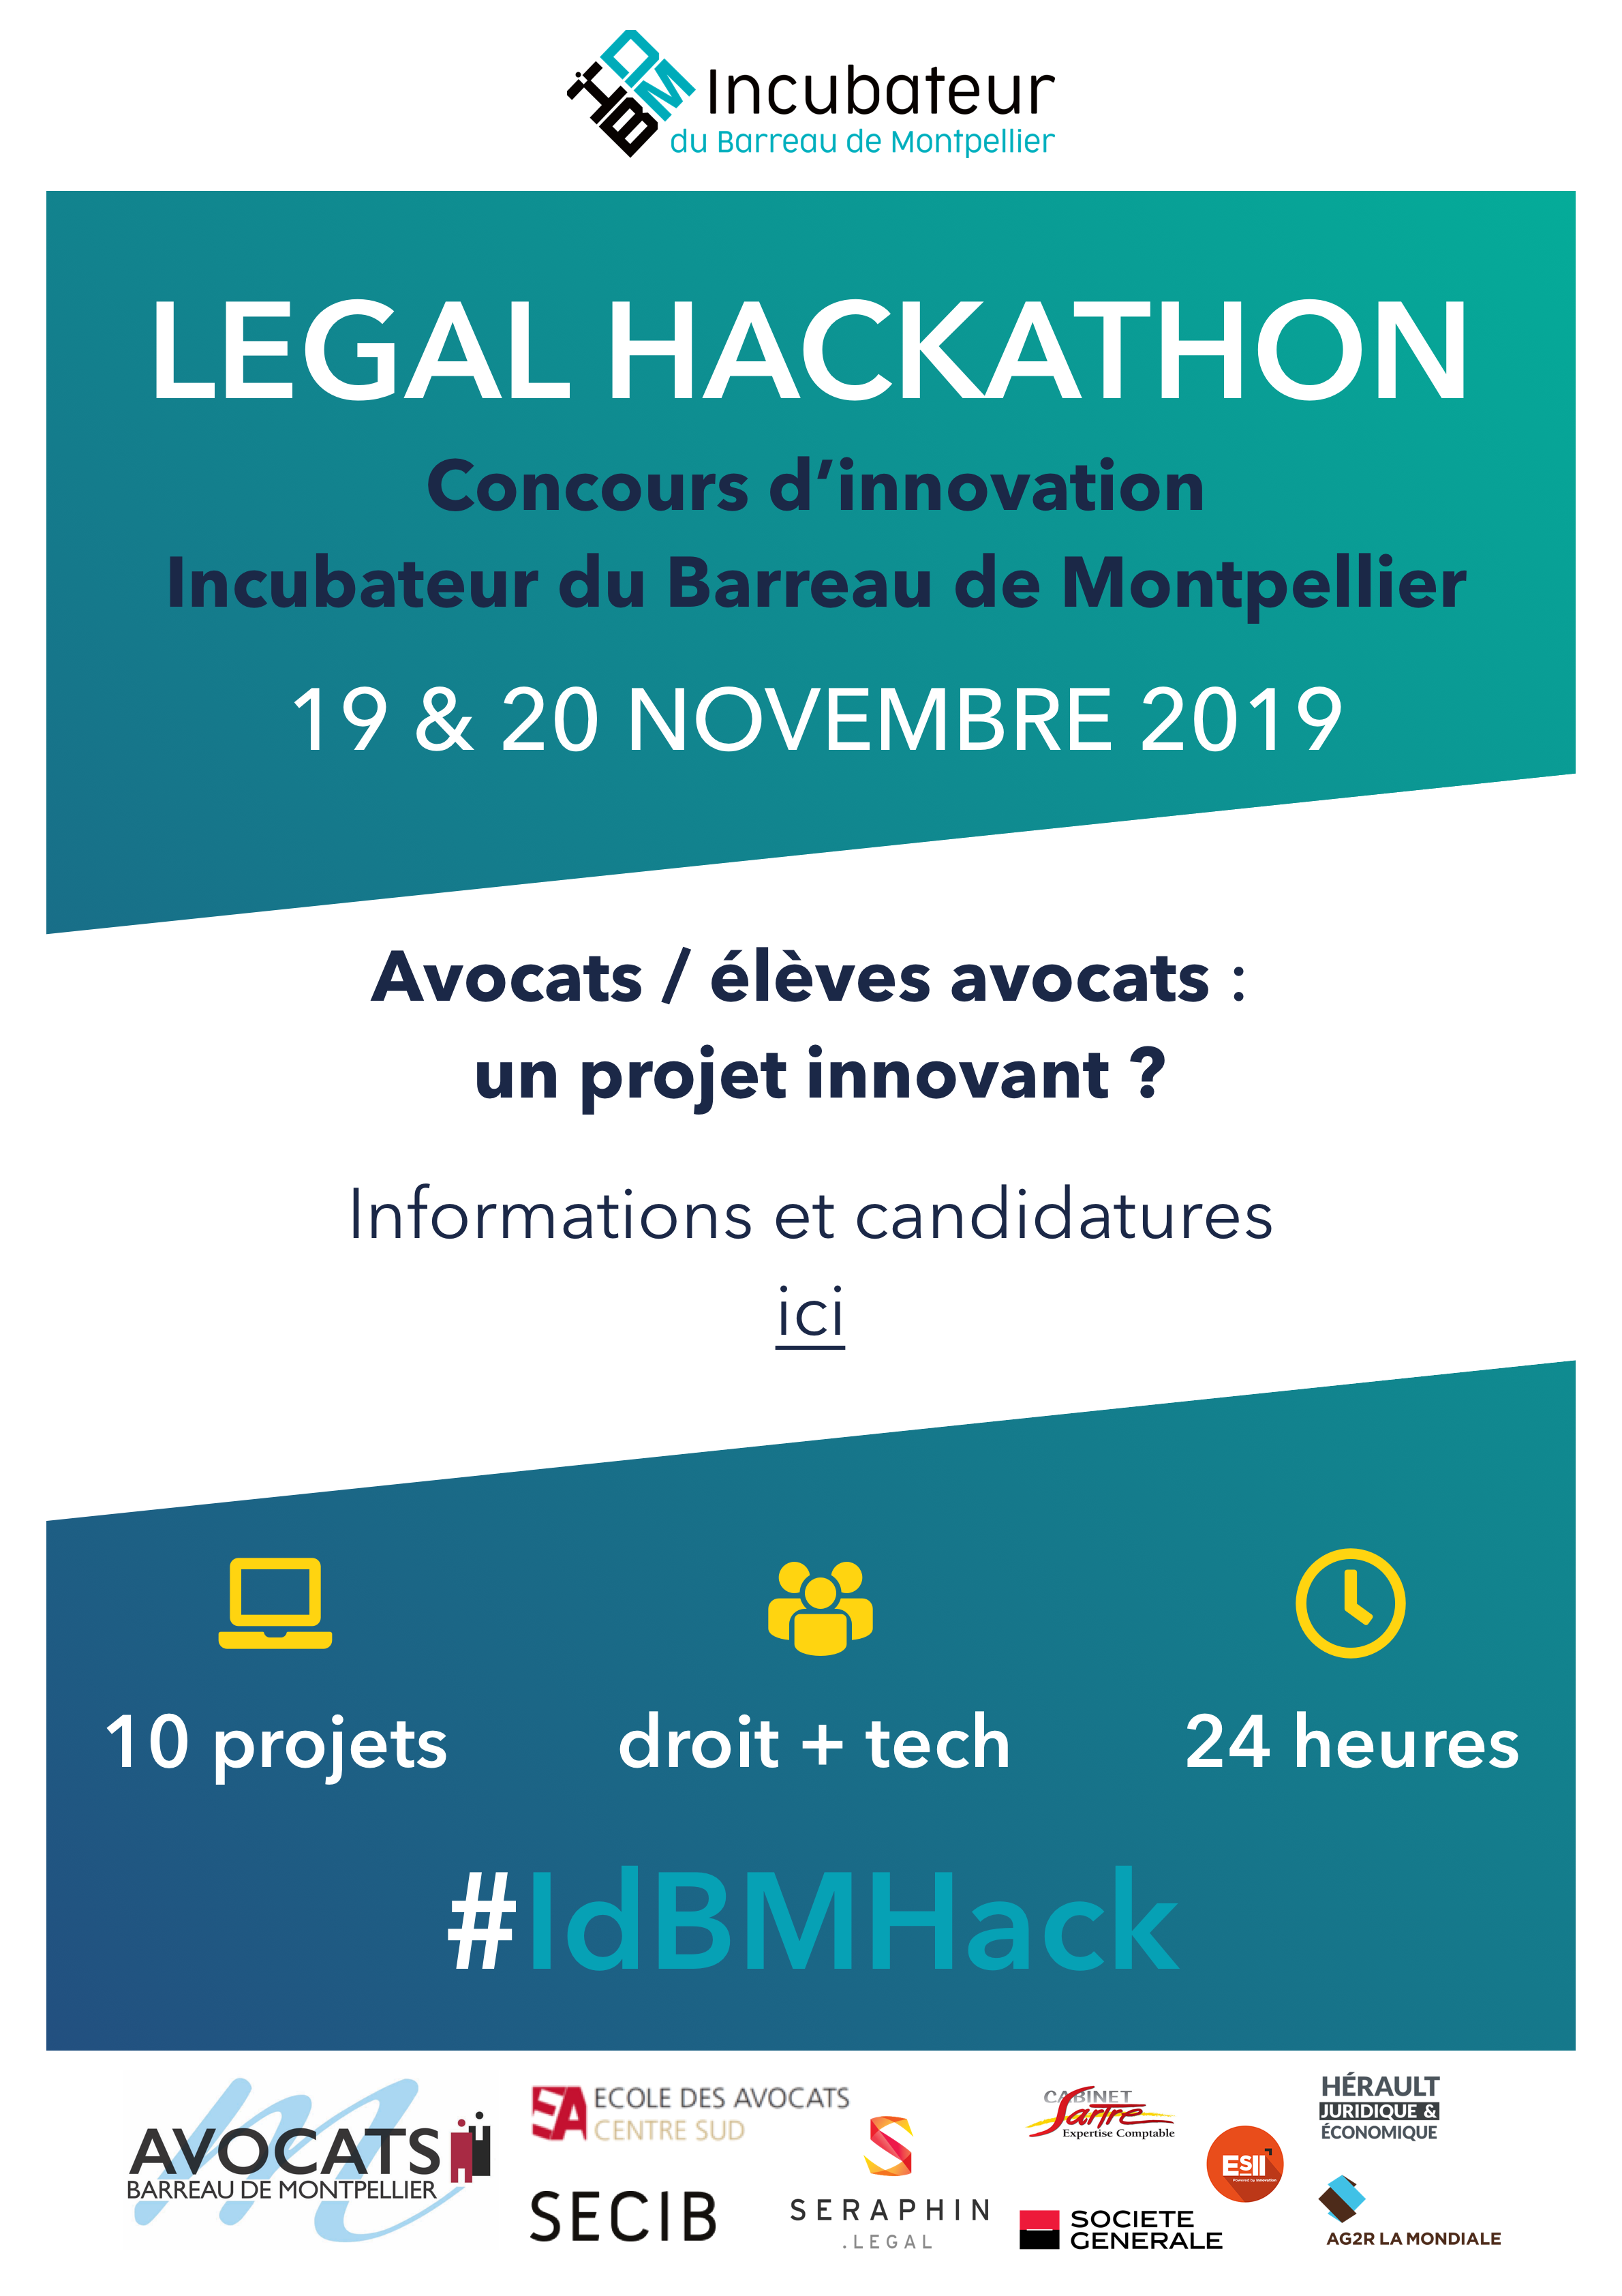 LEGAL HACKATHON - Incubateur du Barreau de Montpellier - 19 & 20 NOVEMBRE 2019